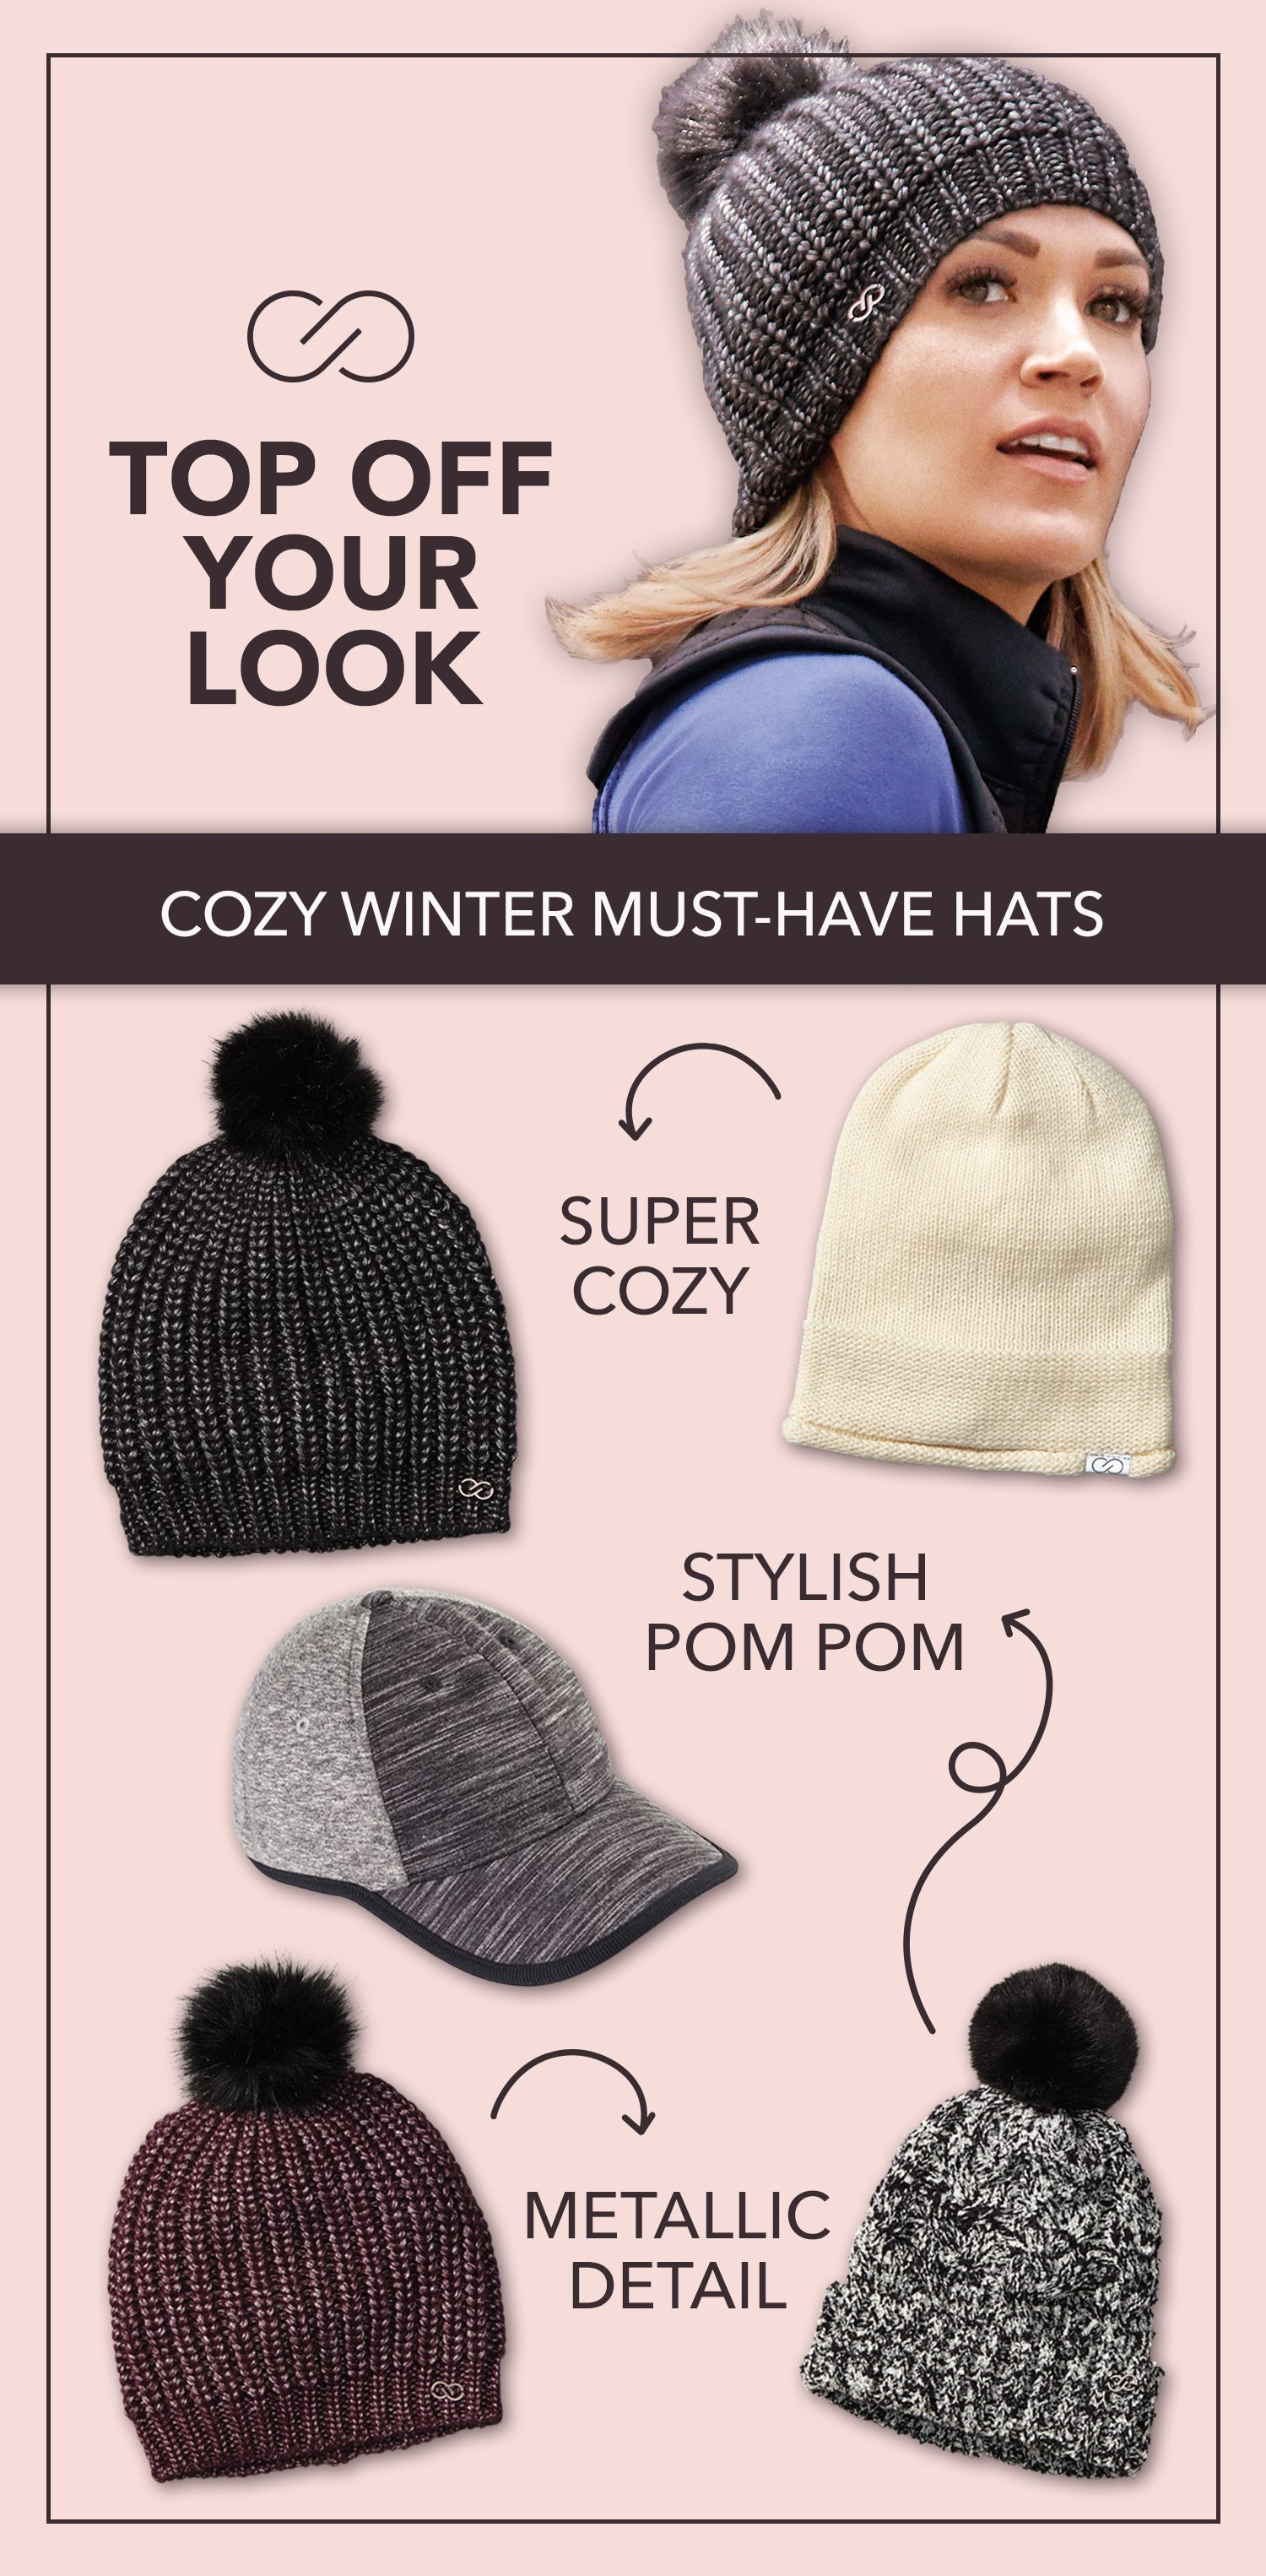 149b8da39 Top off your winter look with these cozy hats that are sure to keep ...